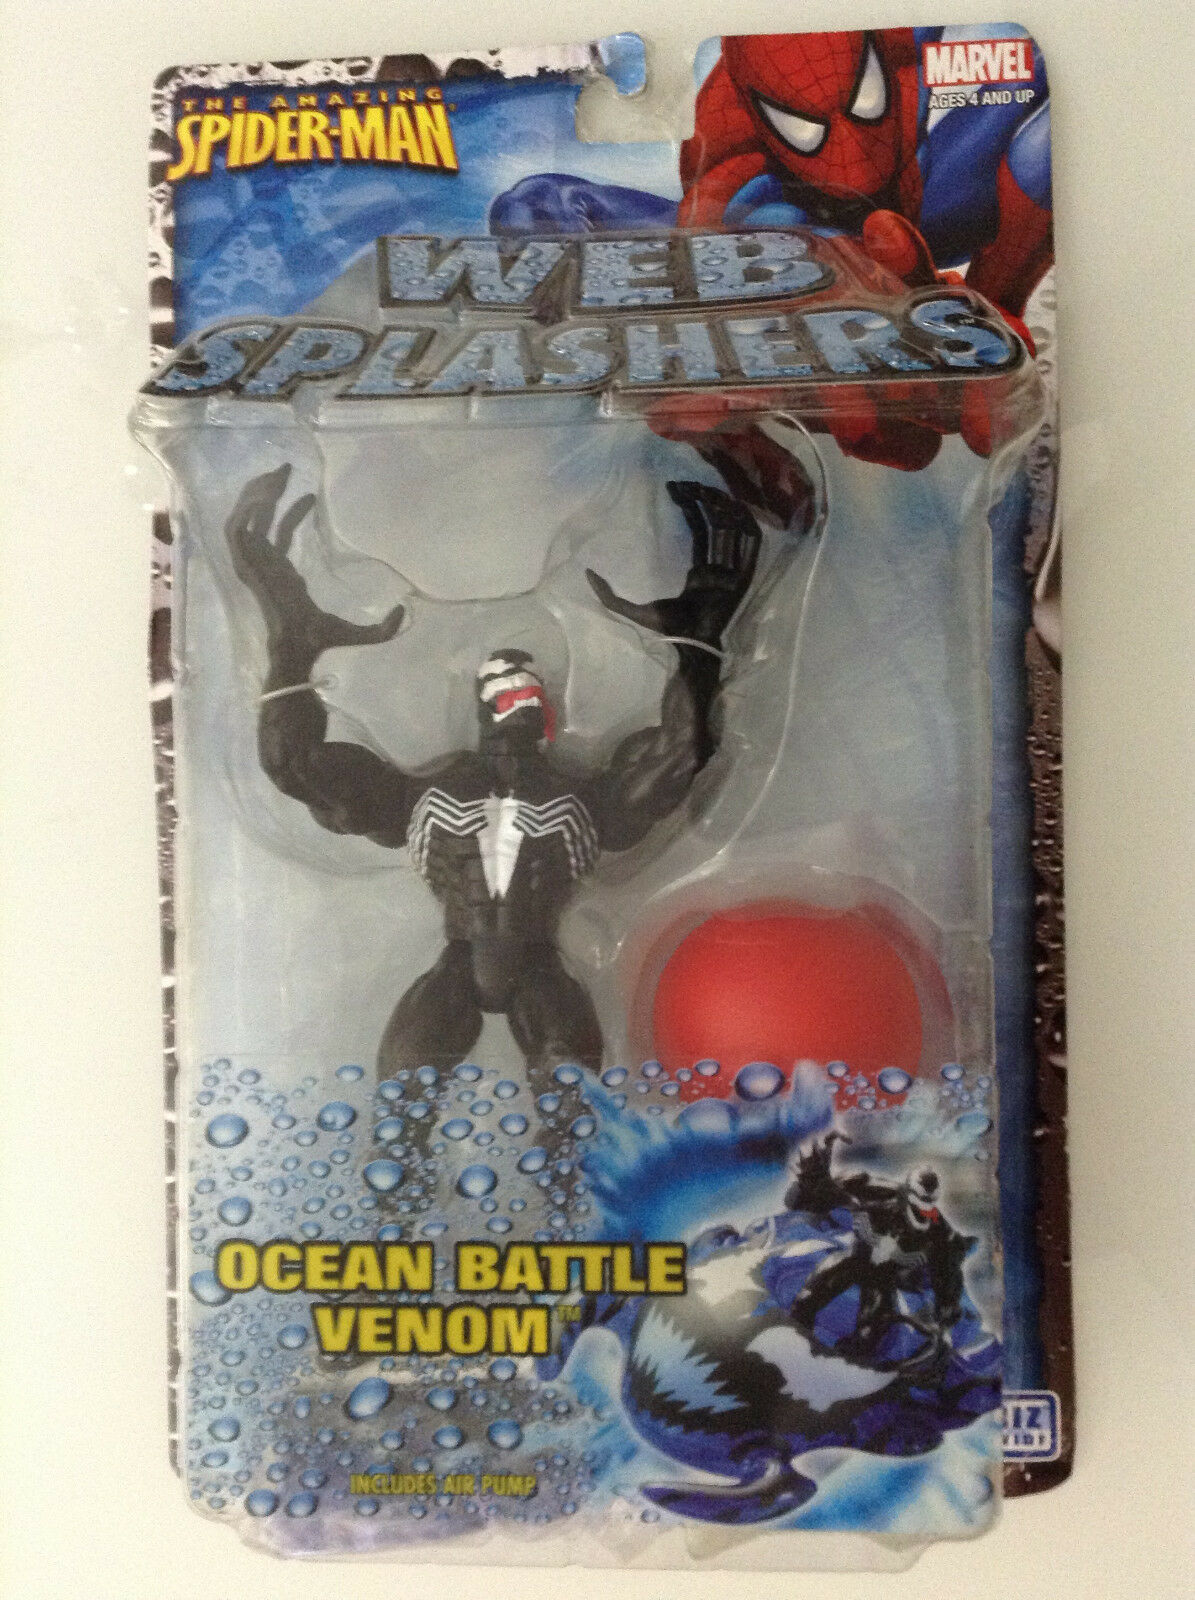 SPIDER-MAN WEB SPLASHERS OCEAN BATTLE VENOM ACTION FIGURE 5  NEW(AMAZING NOW 134